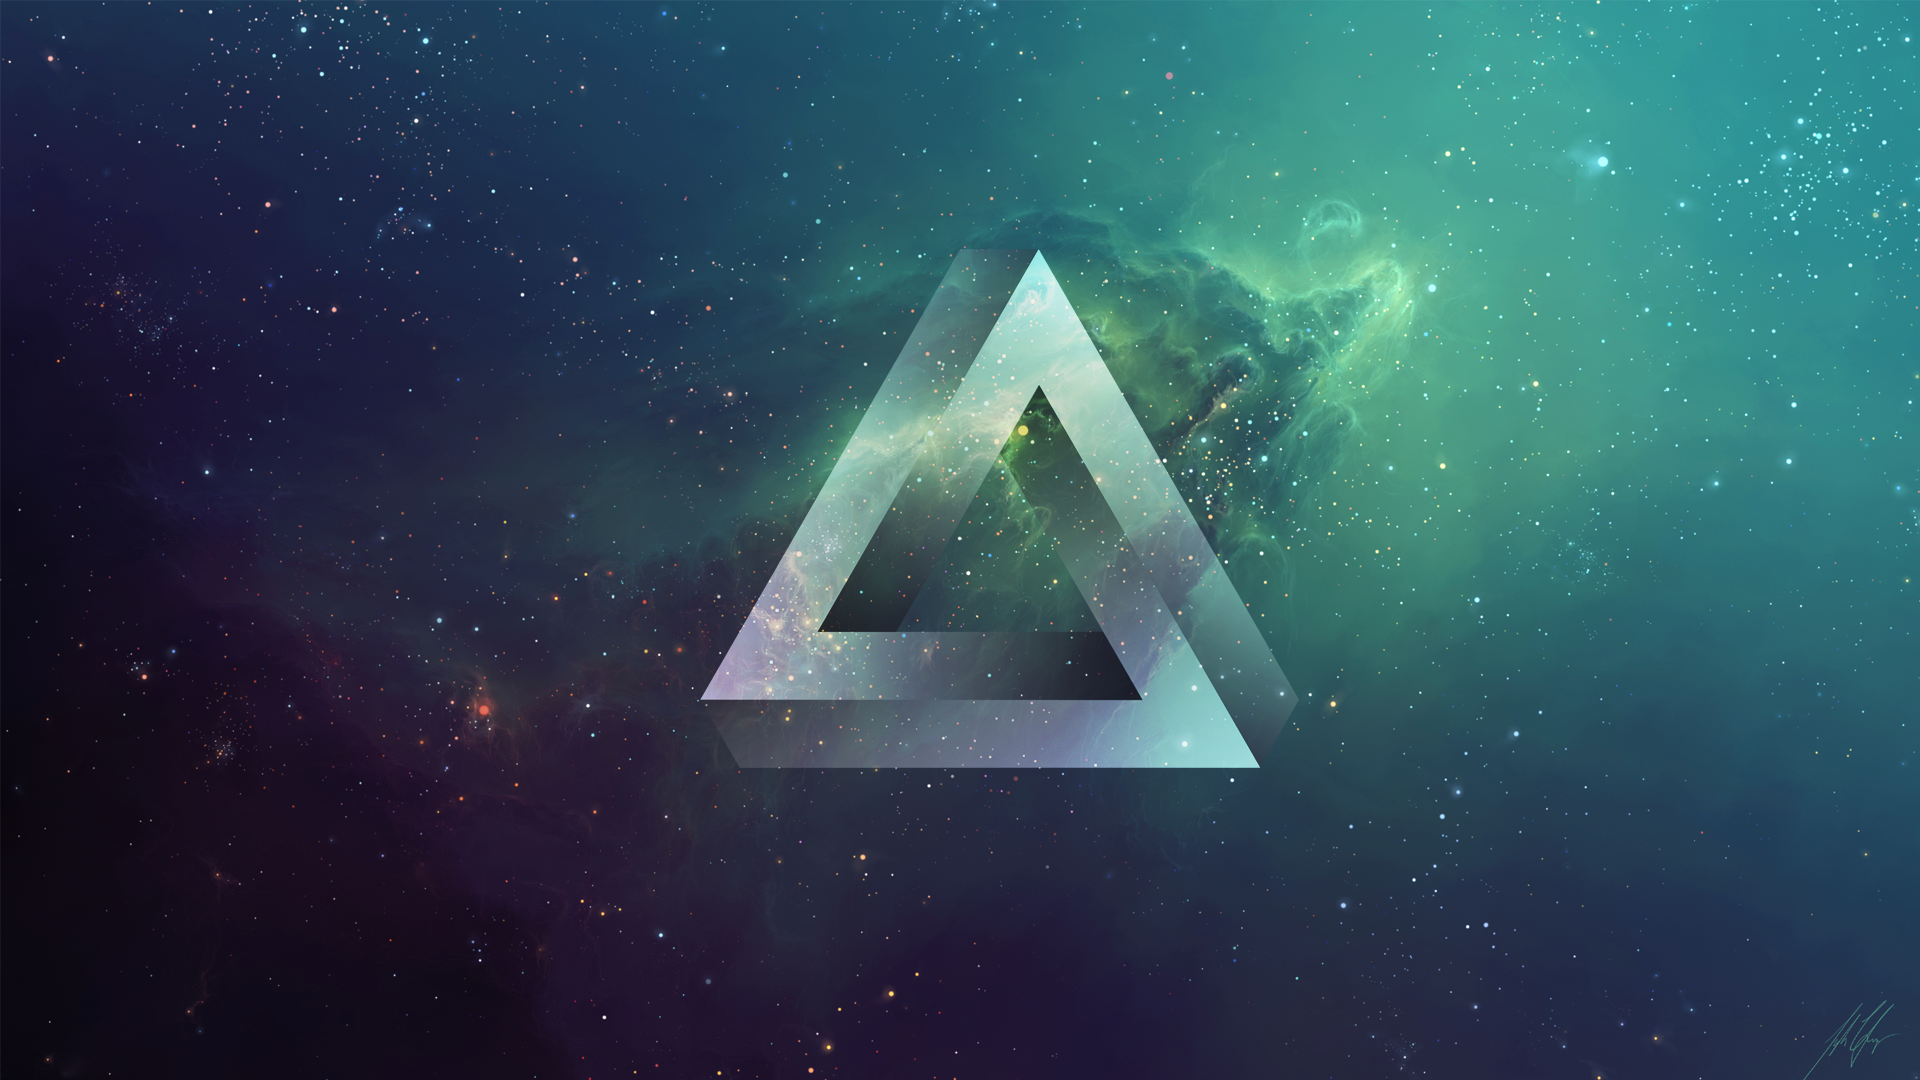 Triangle wallpaper | 1920x1080 | #44574